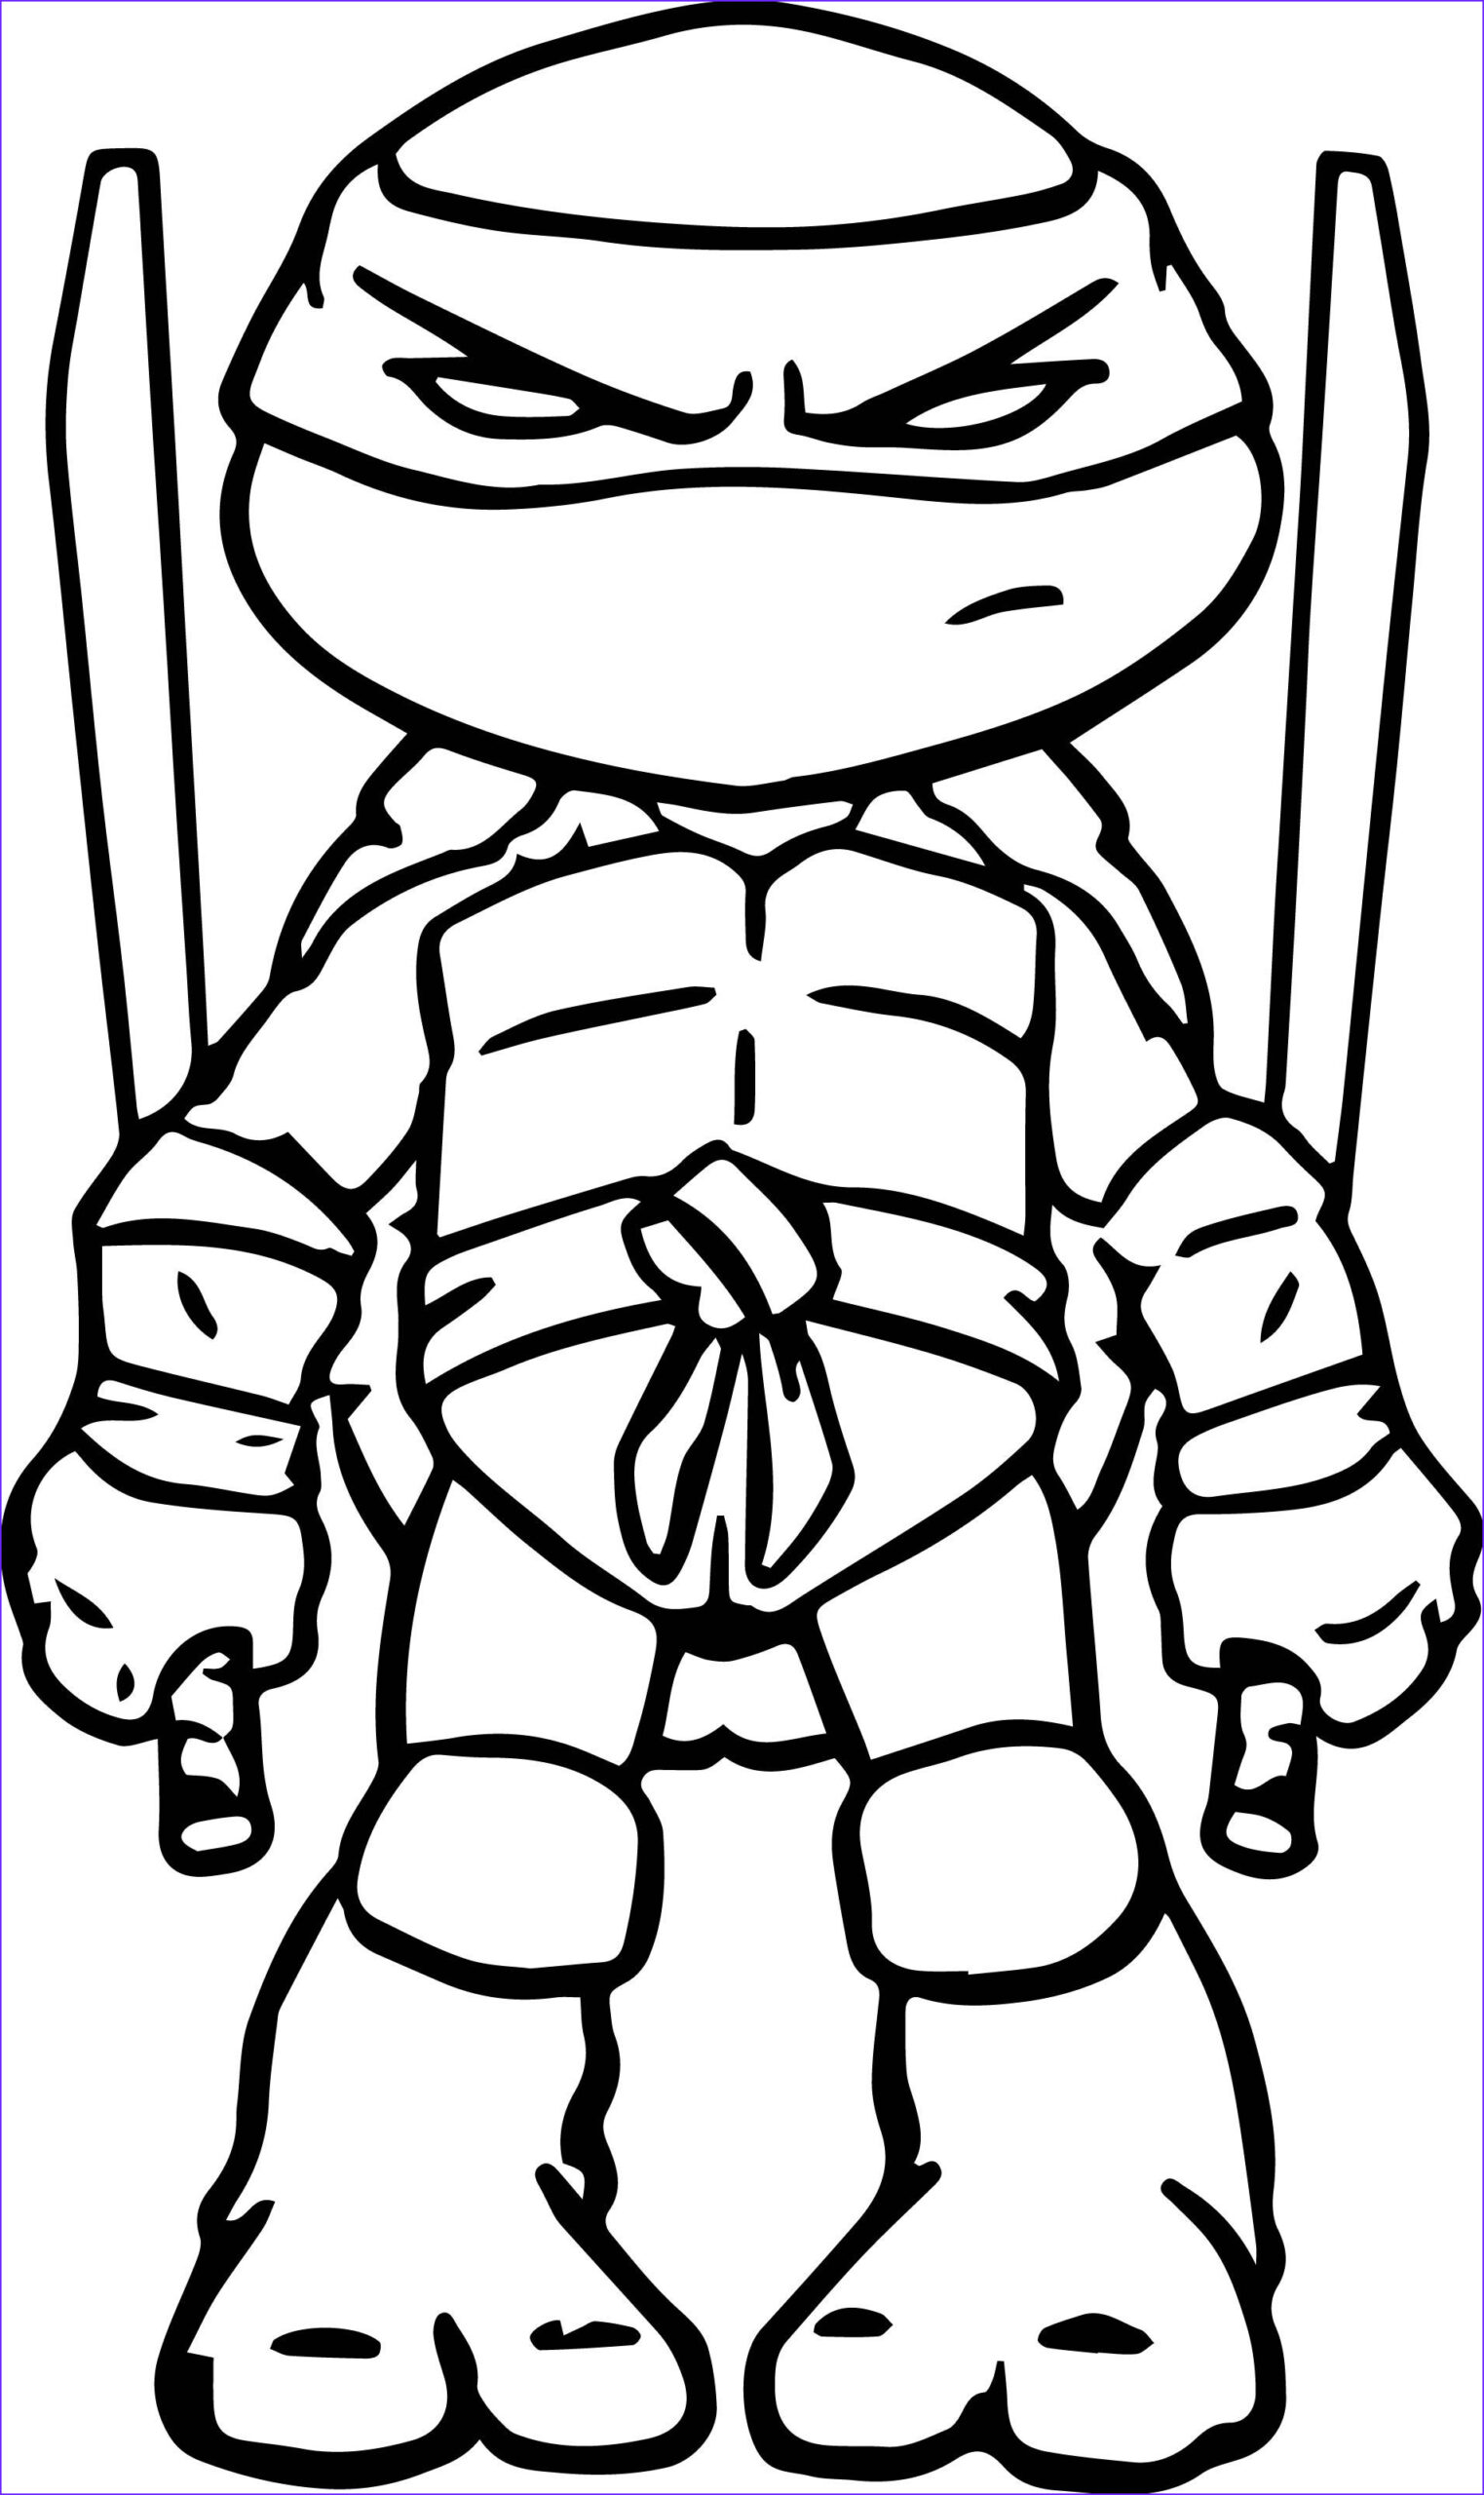 Ninja Turtle Coloring Pictures Cool Photography Ninja Turtles Art Coloring Page Tmnt Party